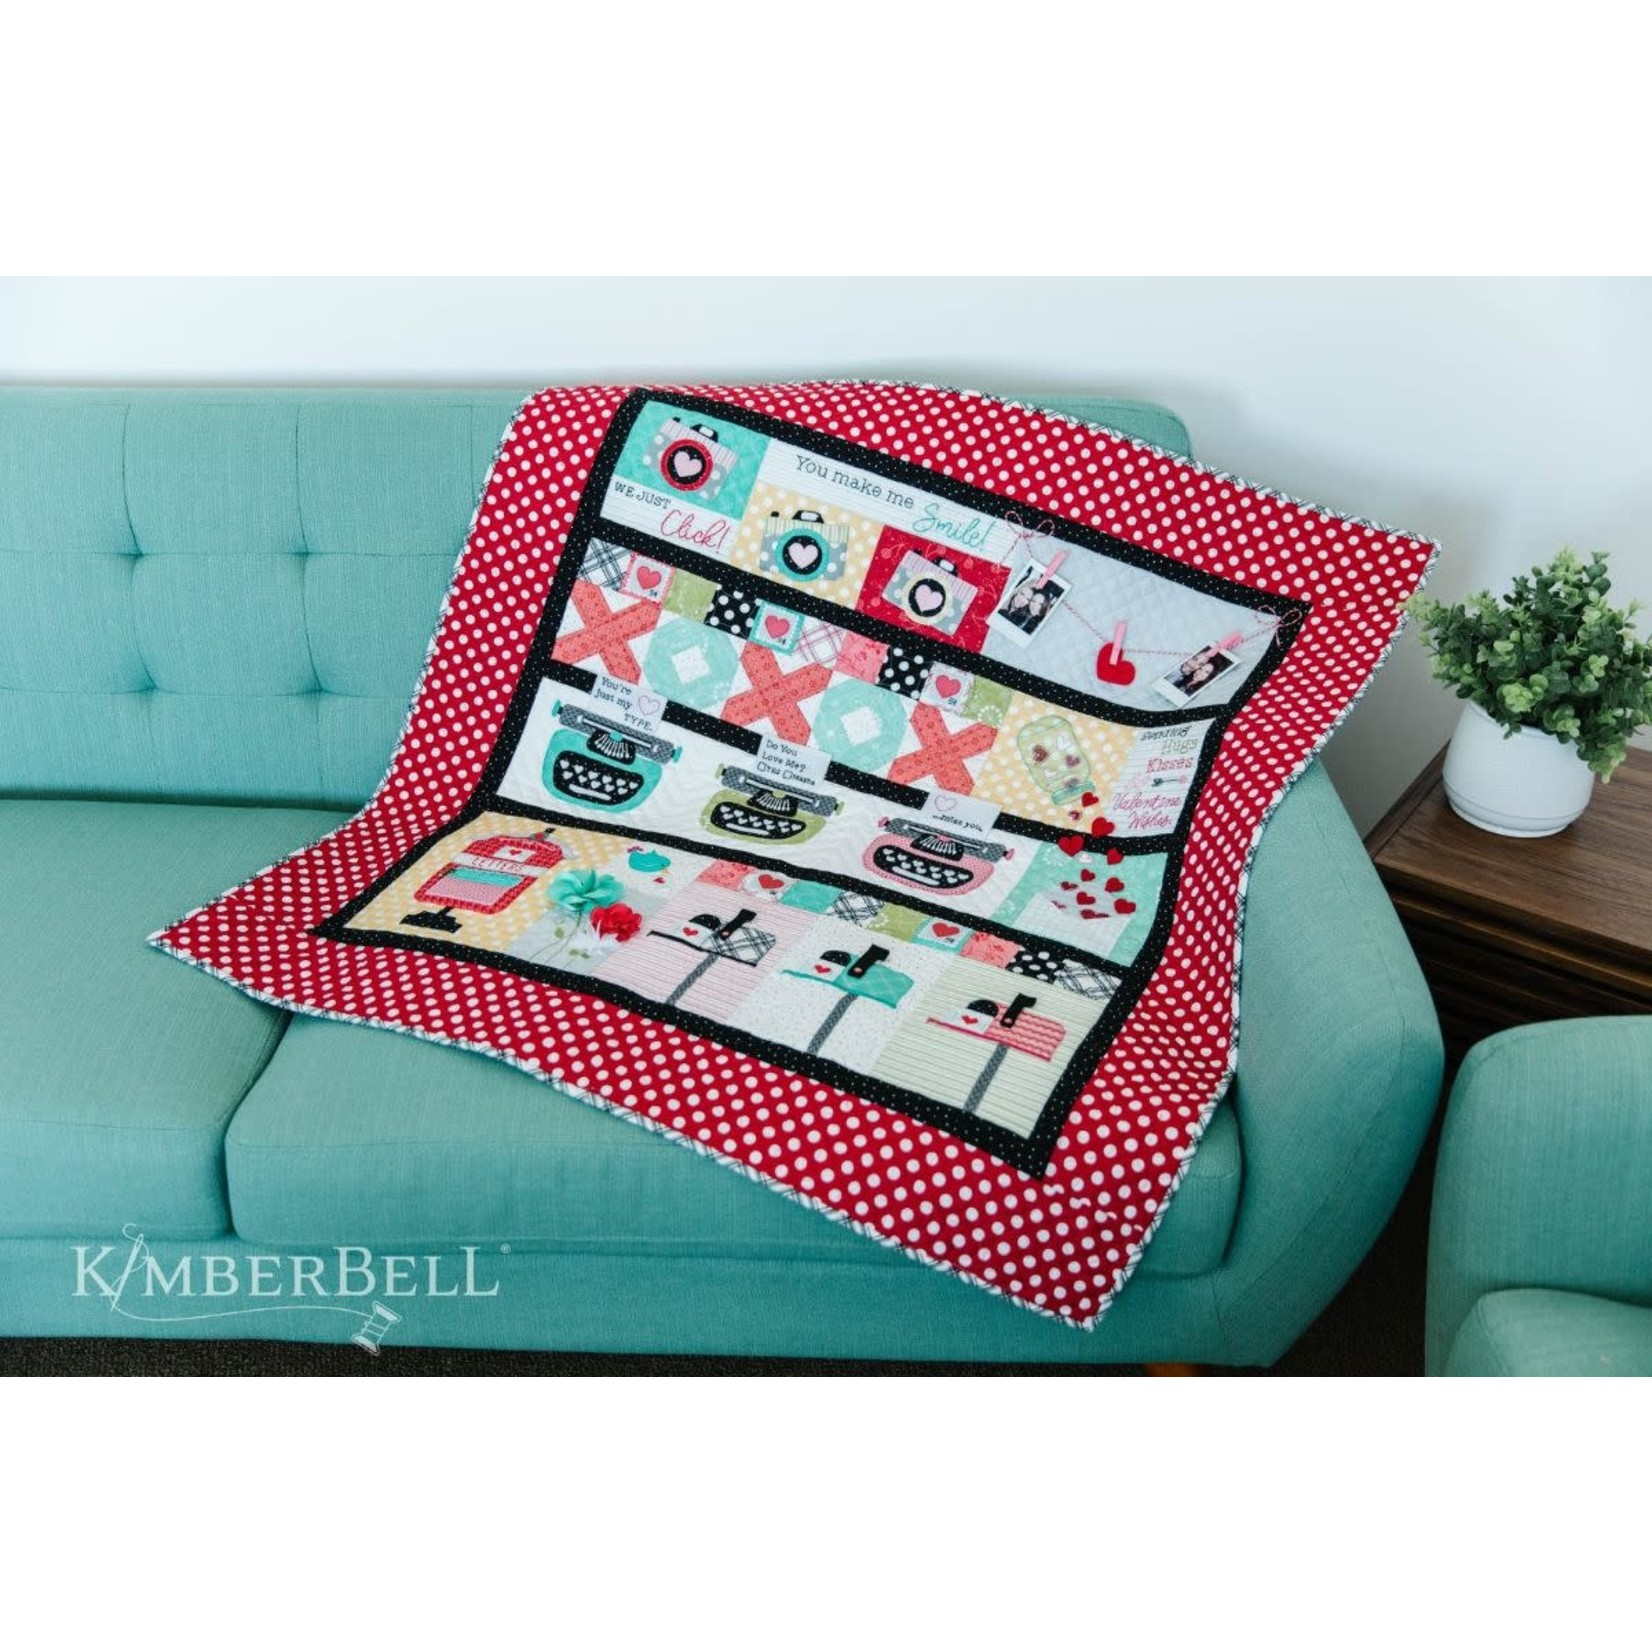 KIMBERBELL DESIGNS Love Notes Mystery Quilt - Sewing only version